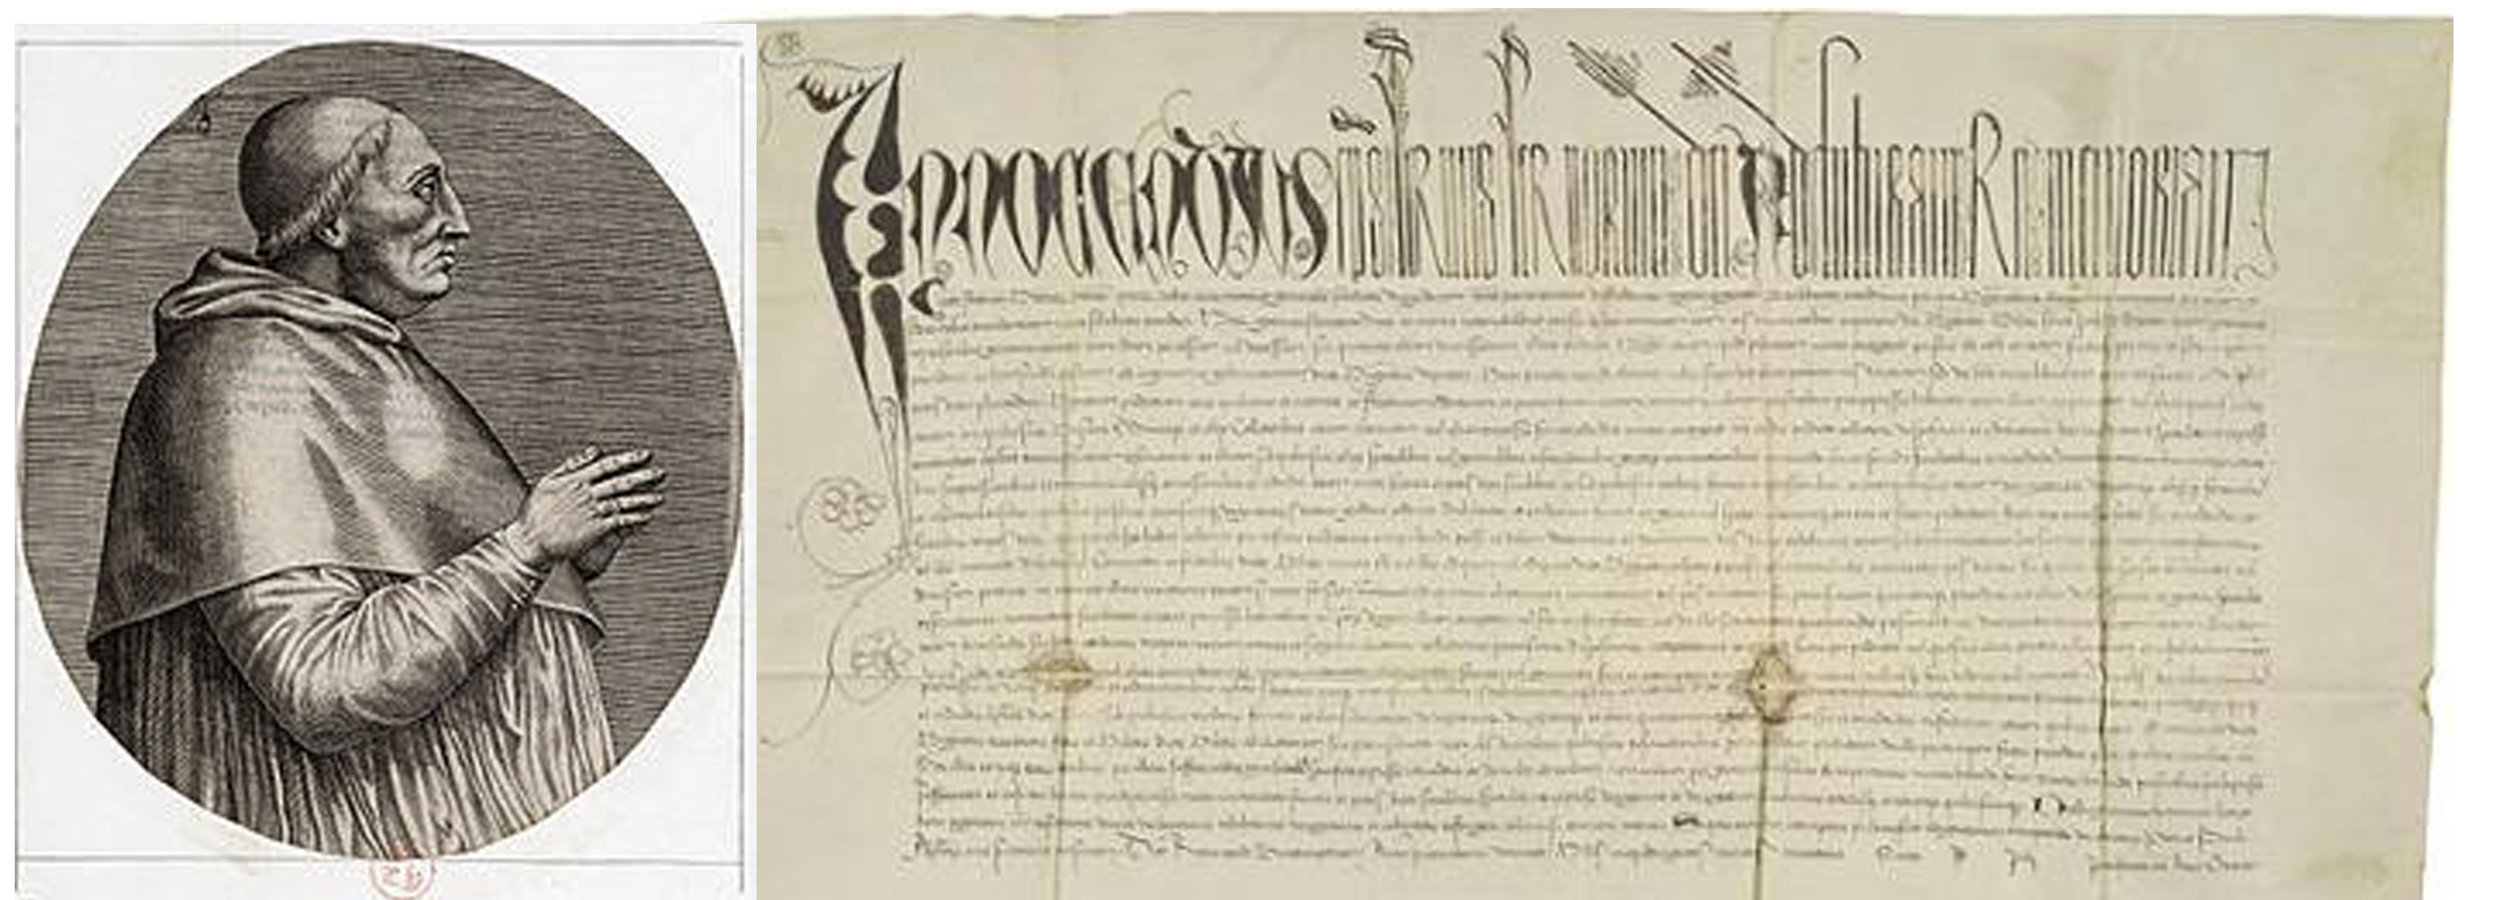 papal document.jpg